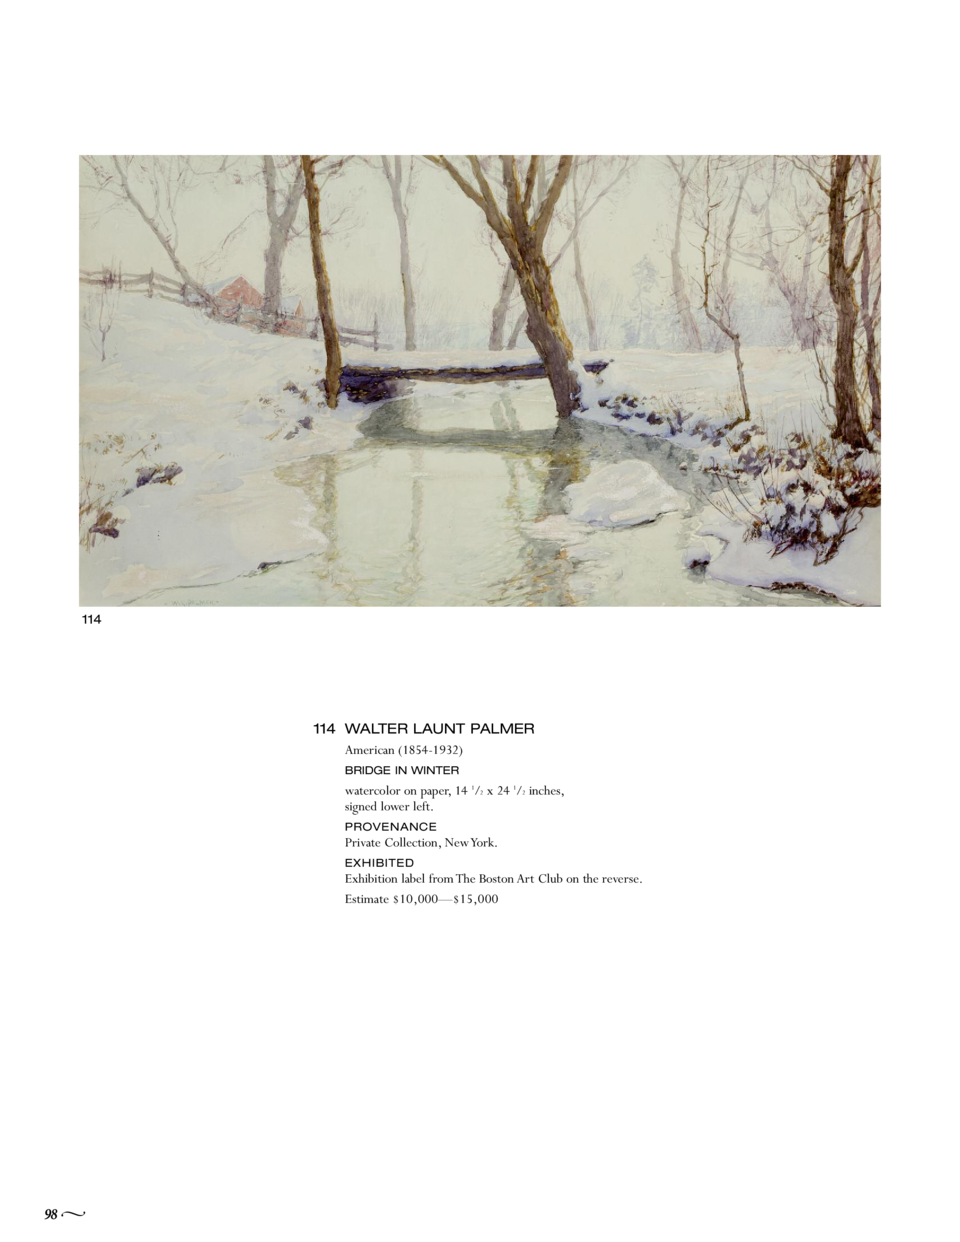 114  114 WALTER LAUNT PALMER American  1854-1932  BRIDGE IN WINTER  watercolor on paper, 14 1 2 x 24 1 2 inches, signed lo...